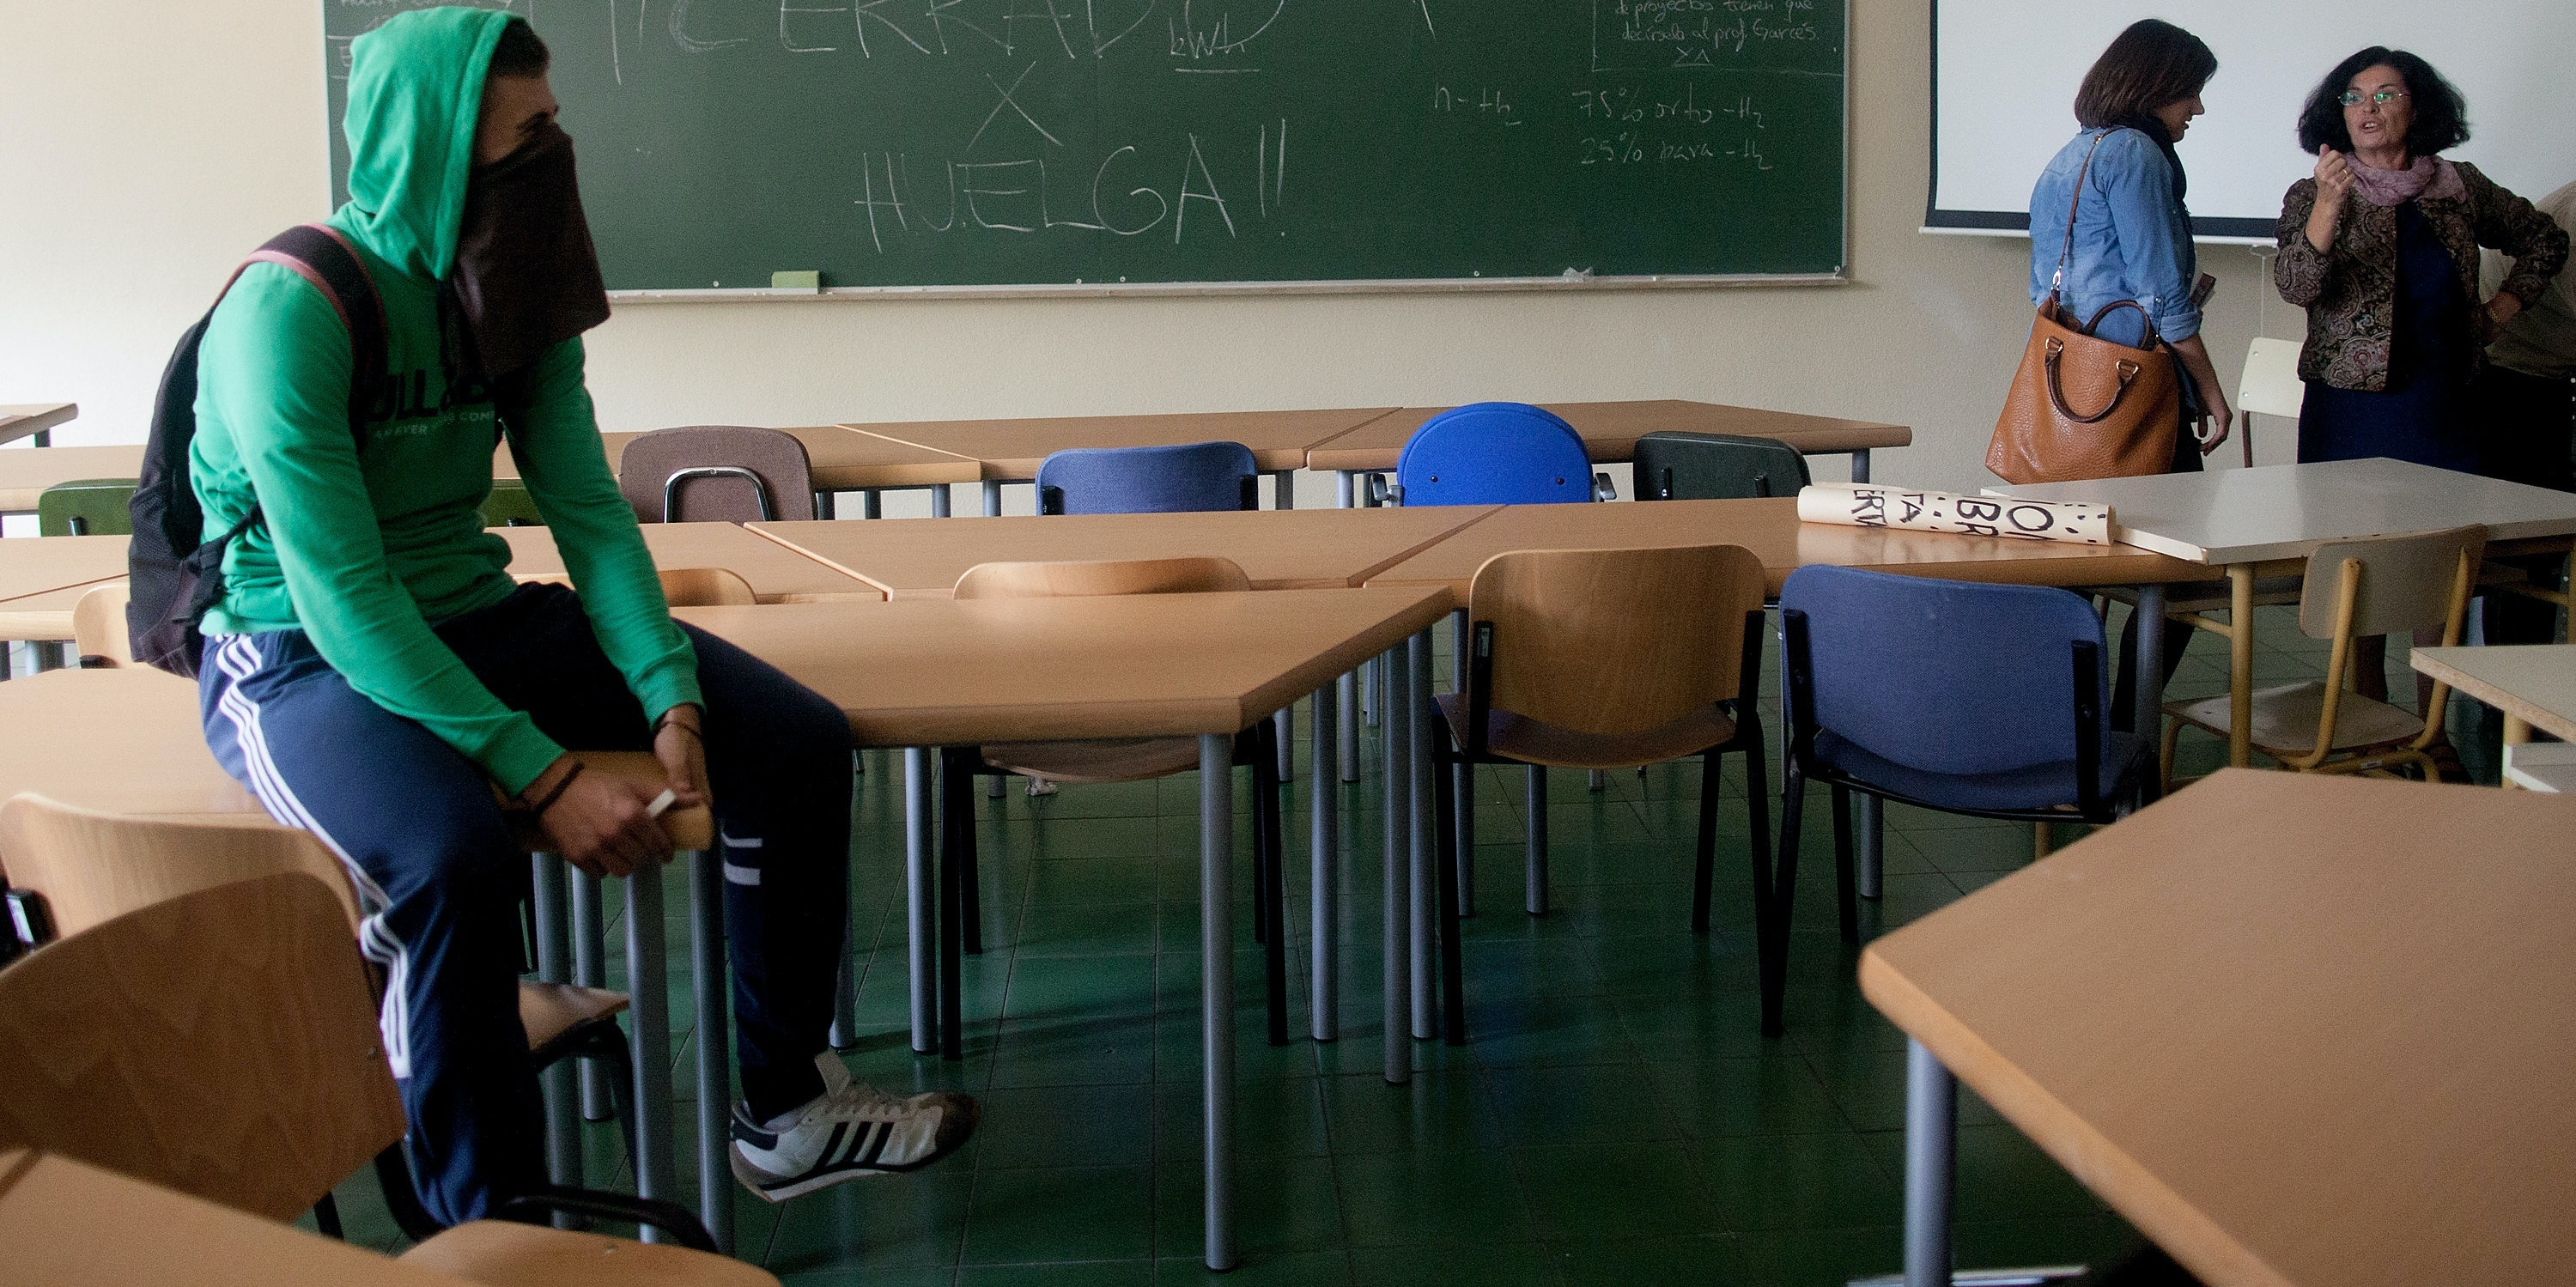 MADRID, SPAIN - OCTOBER 24:  A student on strike (L) sits on desk in a classroom while a teacher speaks (R) and the blackboard reads 'closed by strike' at the School of Aeronautic Engineers in Ciudad Universitaria on October 24, 2013 in Madrid, Spain. The Spanish Parliament recently approved a controversial reform of the educational system, which passed by the ruling right wing People's Party (PP) using their absolute majority and not backed by any other political party. The students are on a three day strike to protest against the new law, which will need to be approved by the senate next month and are calling for the resignation of Education Minister, Jose Ignacio Wert.  (Photo by Pablo Blazquez Dominguez/Getty Images)